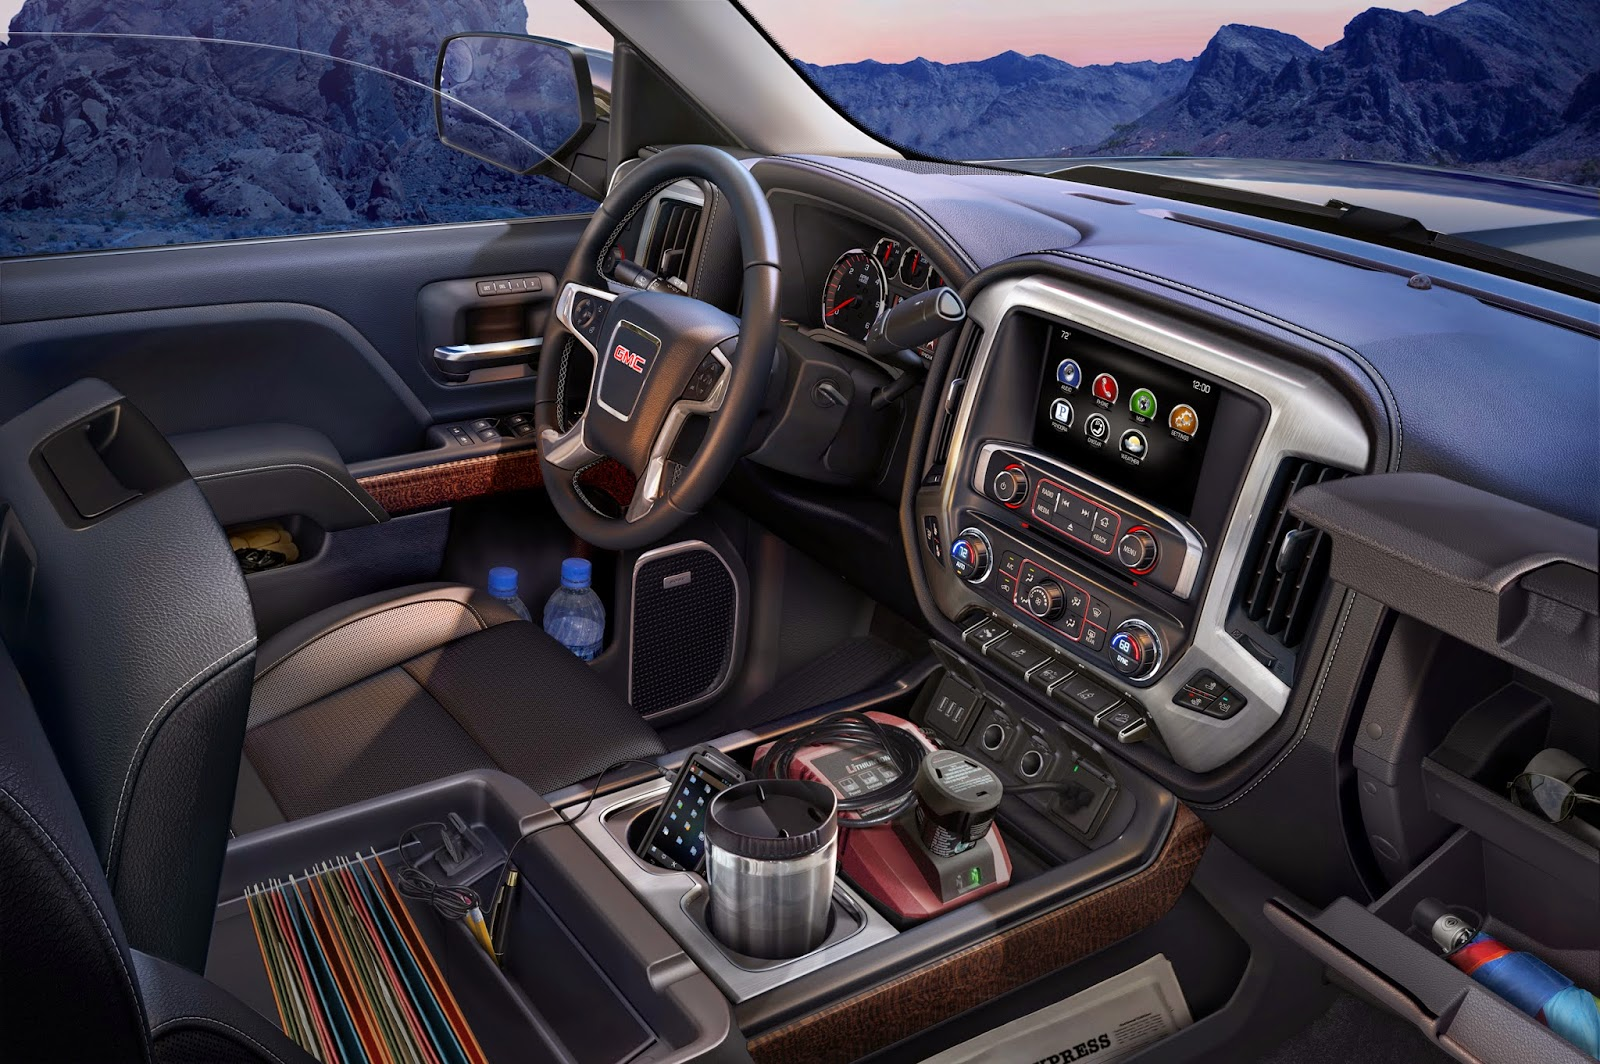 Interior view of 2014 GMC Sierra